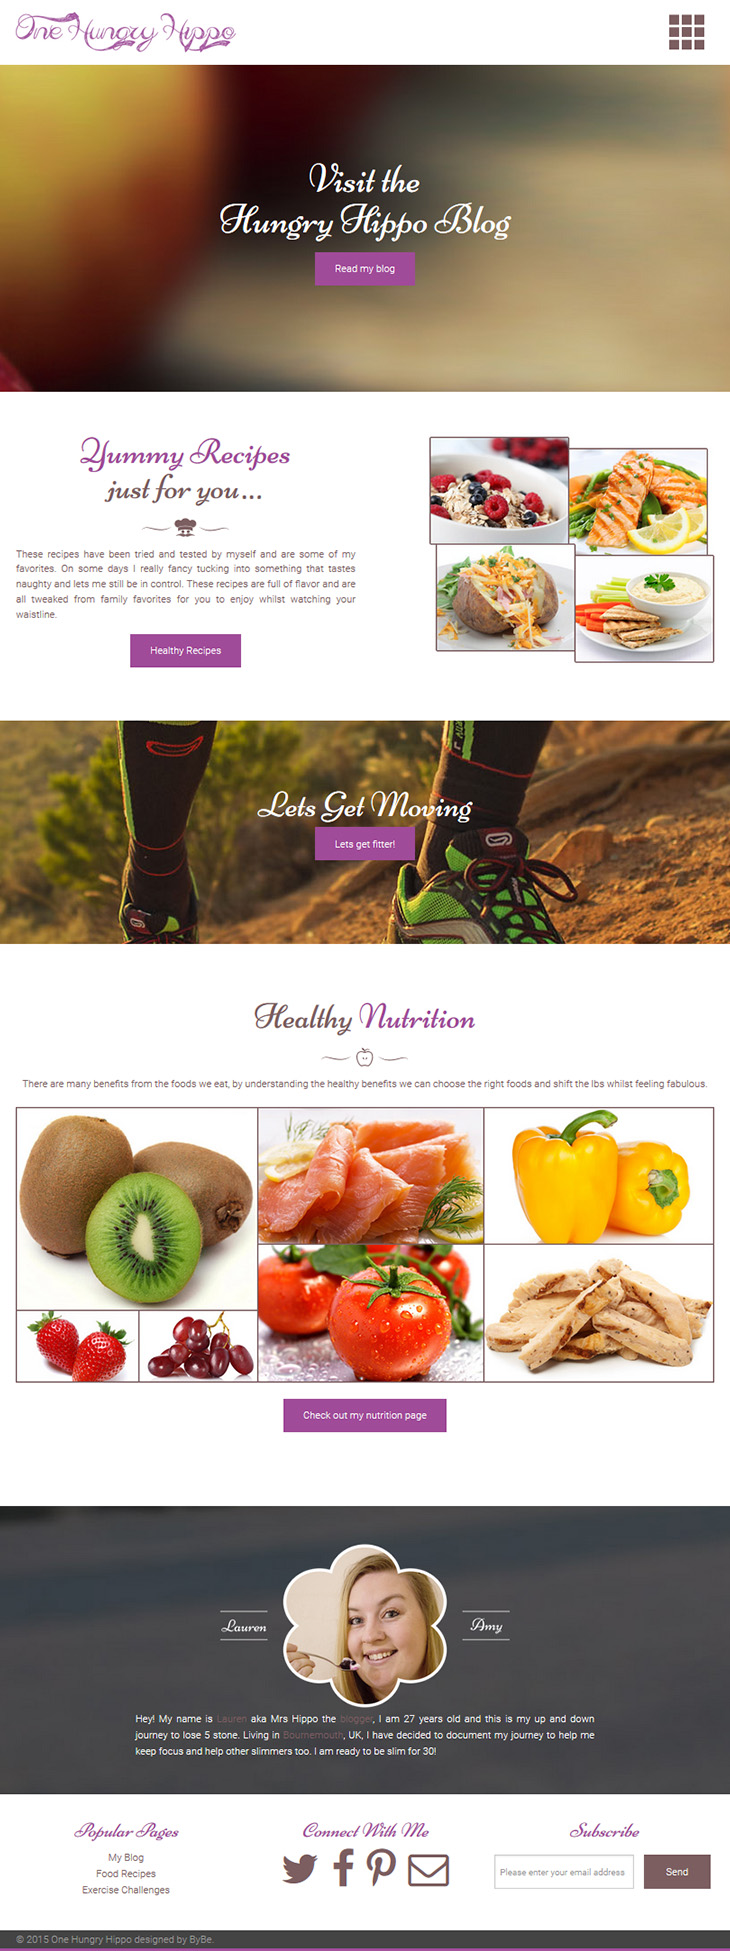 website design for one hungry hippo blog